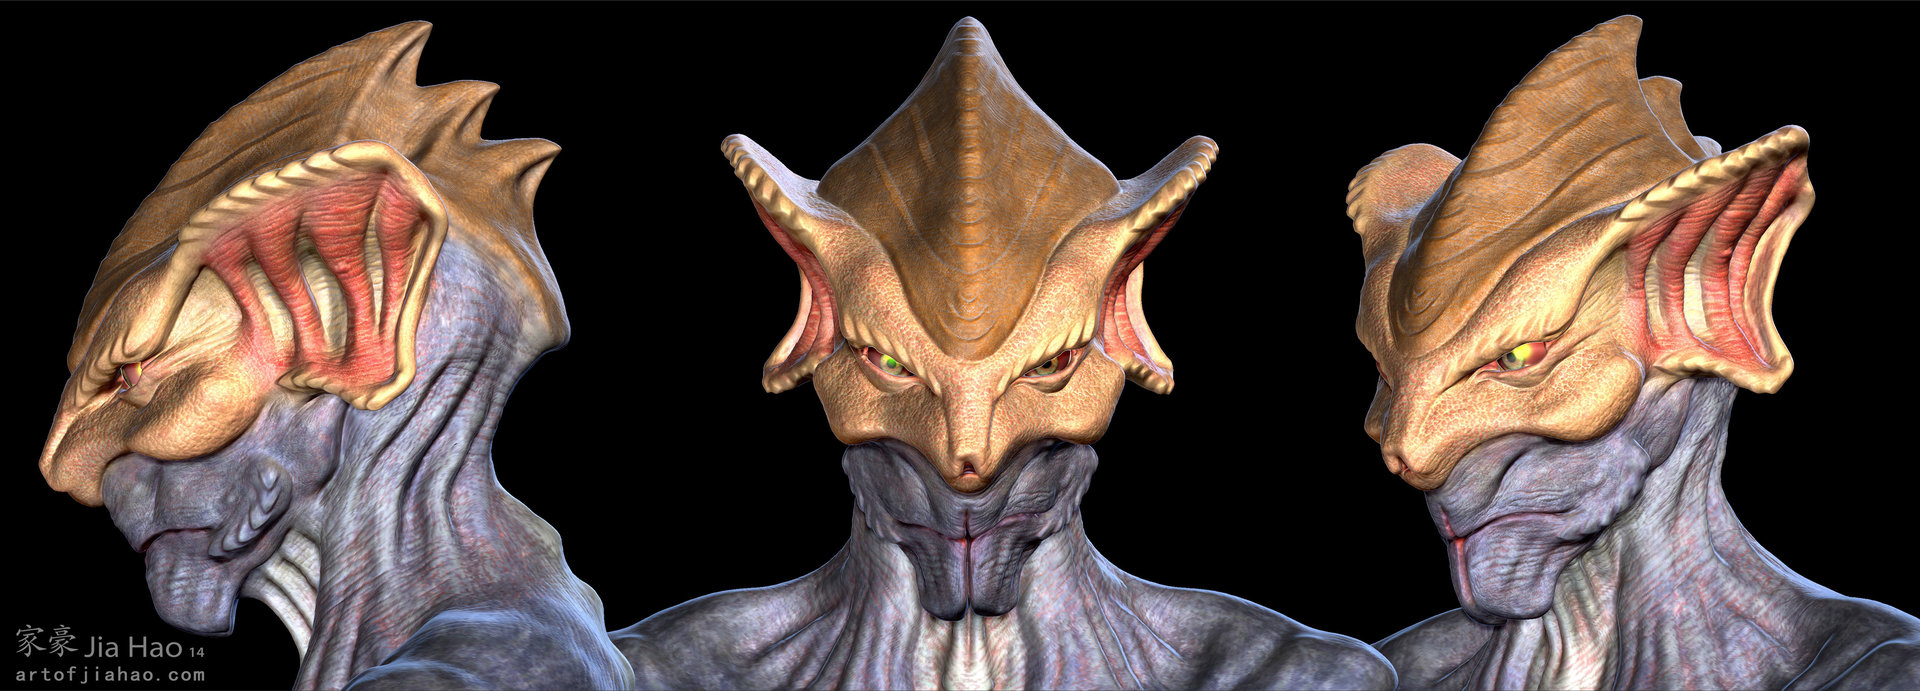 Jia hao 2014 01 alien bust 1 views beauty